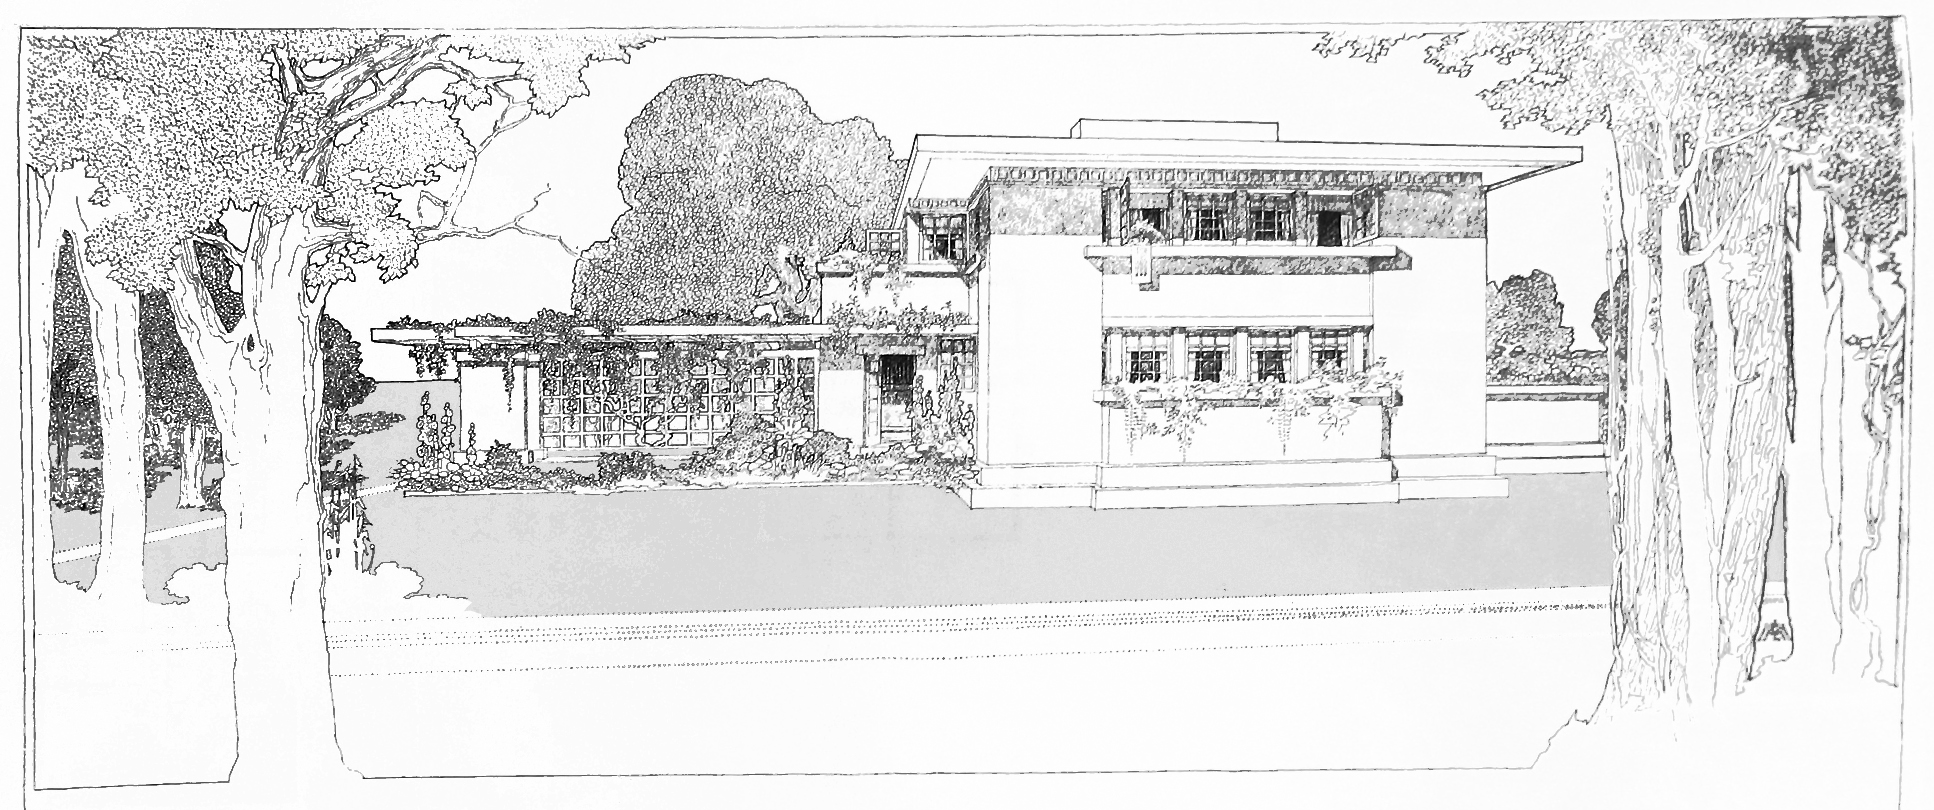 Fireproof_House_2 Frank Lloyd Wright Fireproof House Plans on massaro house plans, will rogers house plans, florence alabama rosenbaum house plans, taliesin house plans, concrete cinder block garage building plans, richard neutra house plans, seth peterson cottage plans, unity temple plans, eero saarinen house plans, thomas jefferson house plans, richard morris hunt house plans, water lesson plans, buckminster fuller house plans, villa savoye house plans, fallingwater house plans, wisconsin house plans, desert house plans, wright style home plans, philip johnson house plans, andrew carnegie house plans,